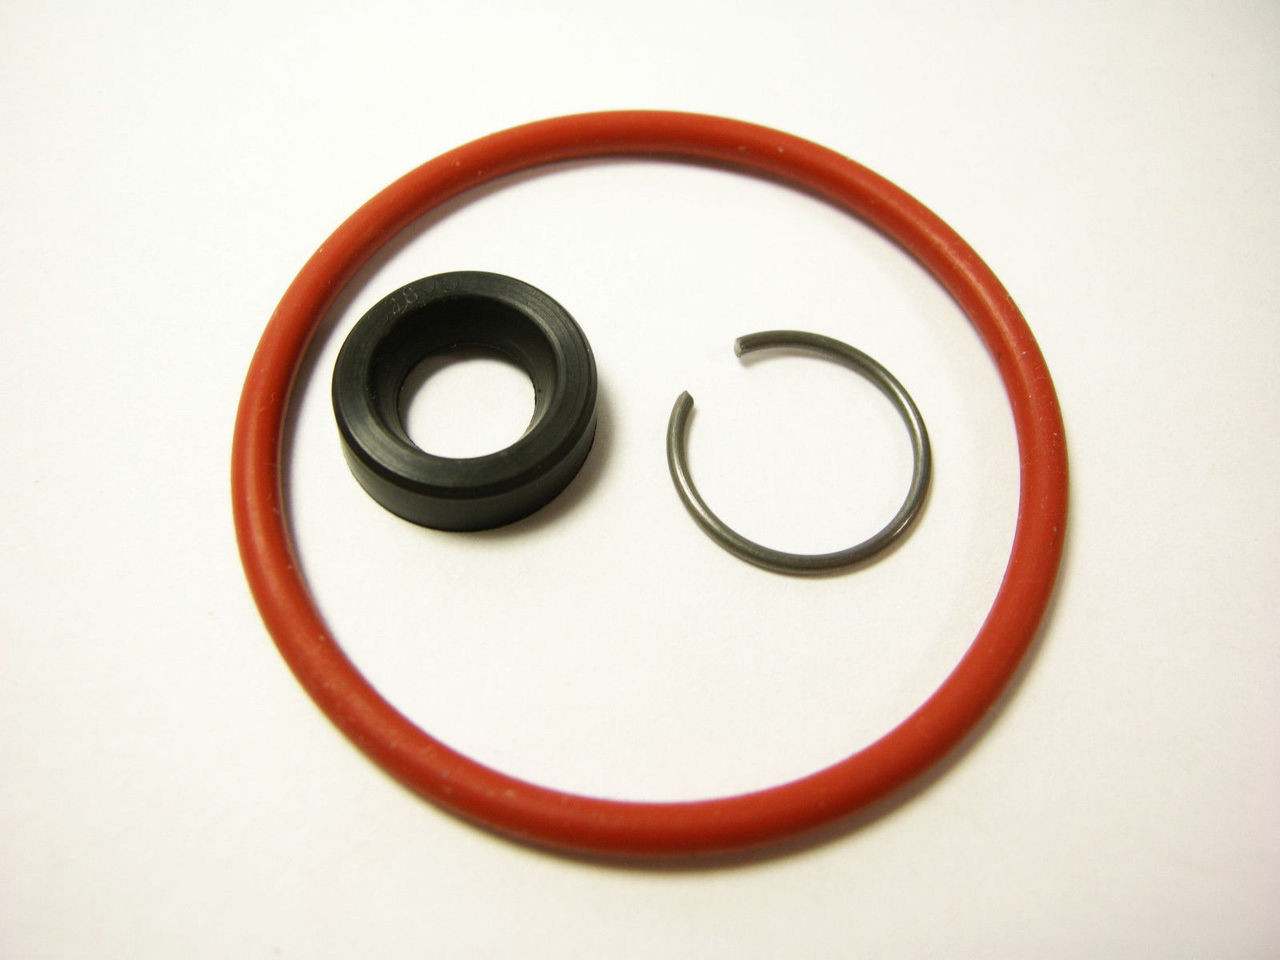 TF8 727 TF6 904 SPEEDO HOUSING LEAK STOP SEAL KIT Speedometer